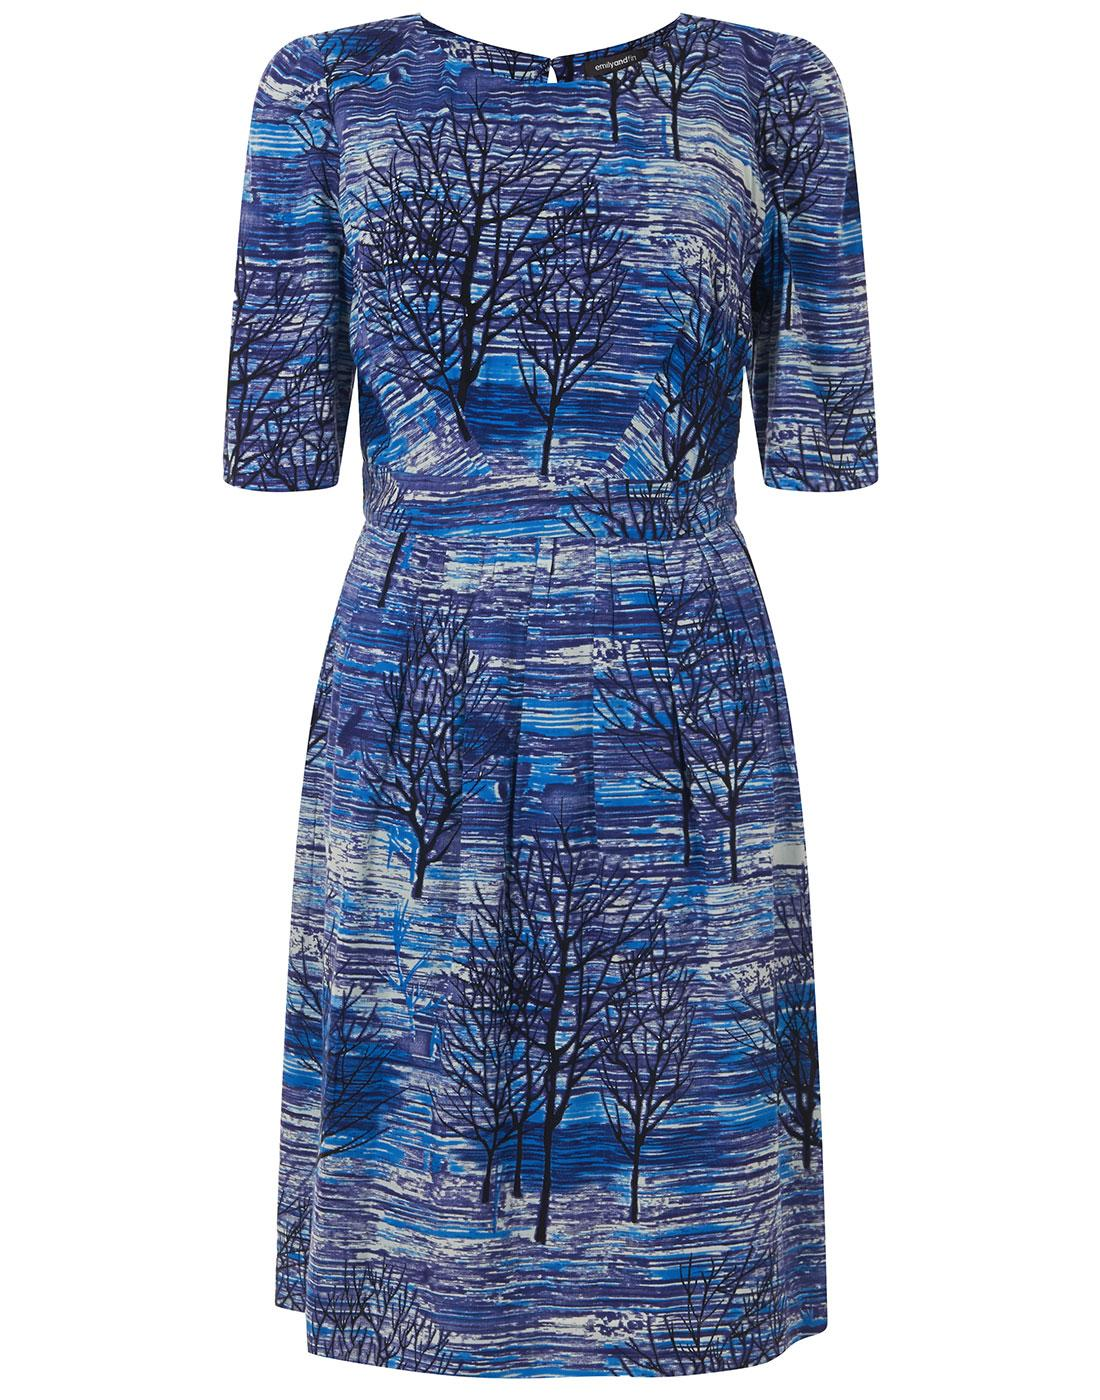 Heather EMILY AND FIN Tree Silhouette Print Dress